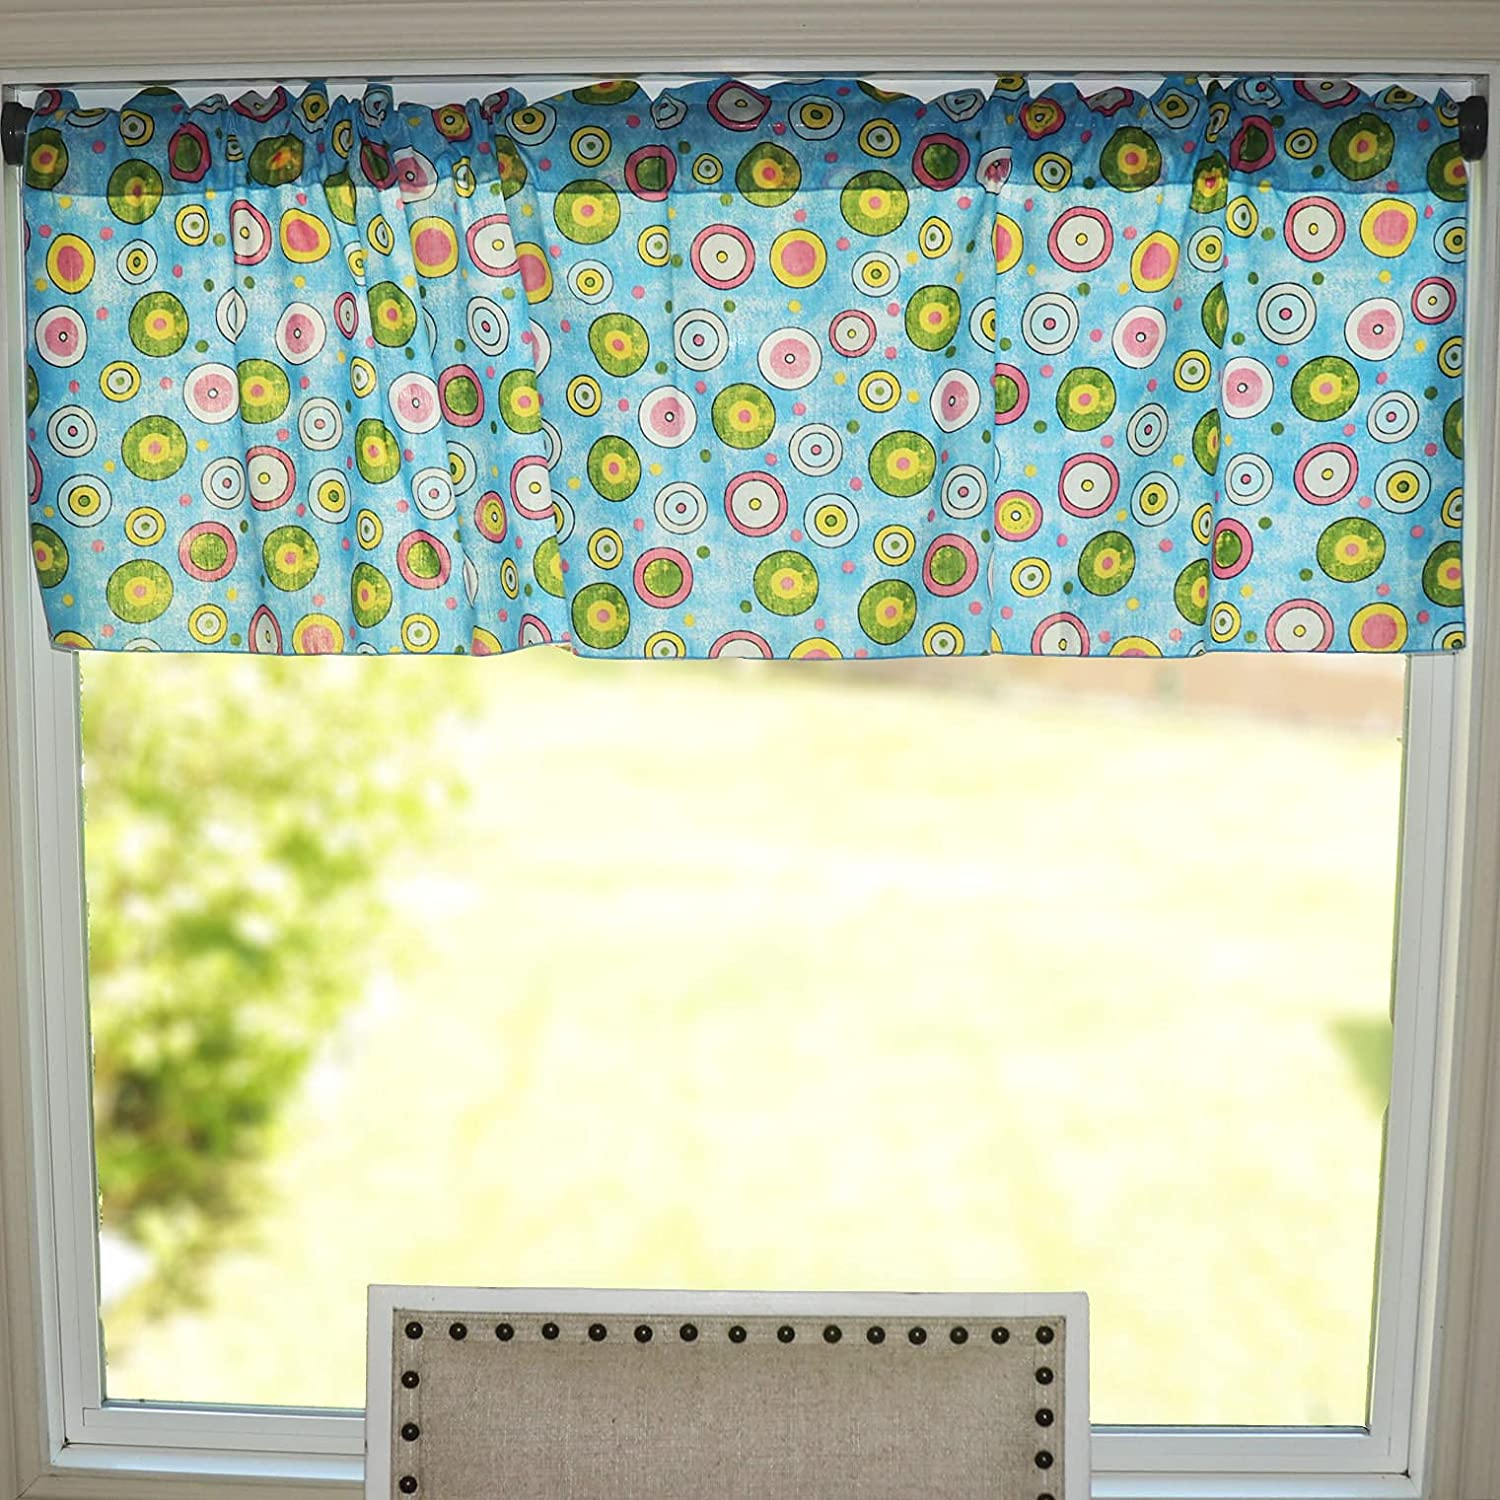 Zen Creative Designs Circles and Valanc Cotton Window Manufacturer regenerated product Polka Long-awaited Dots